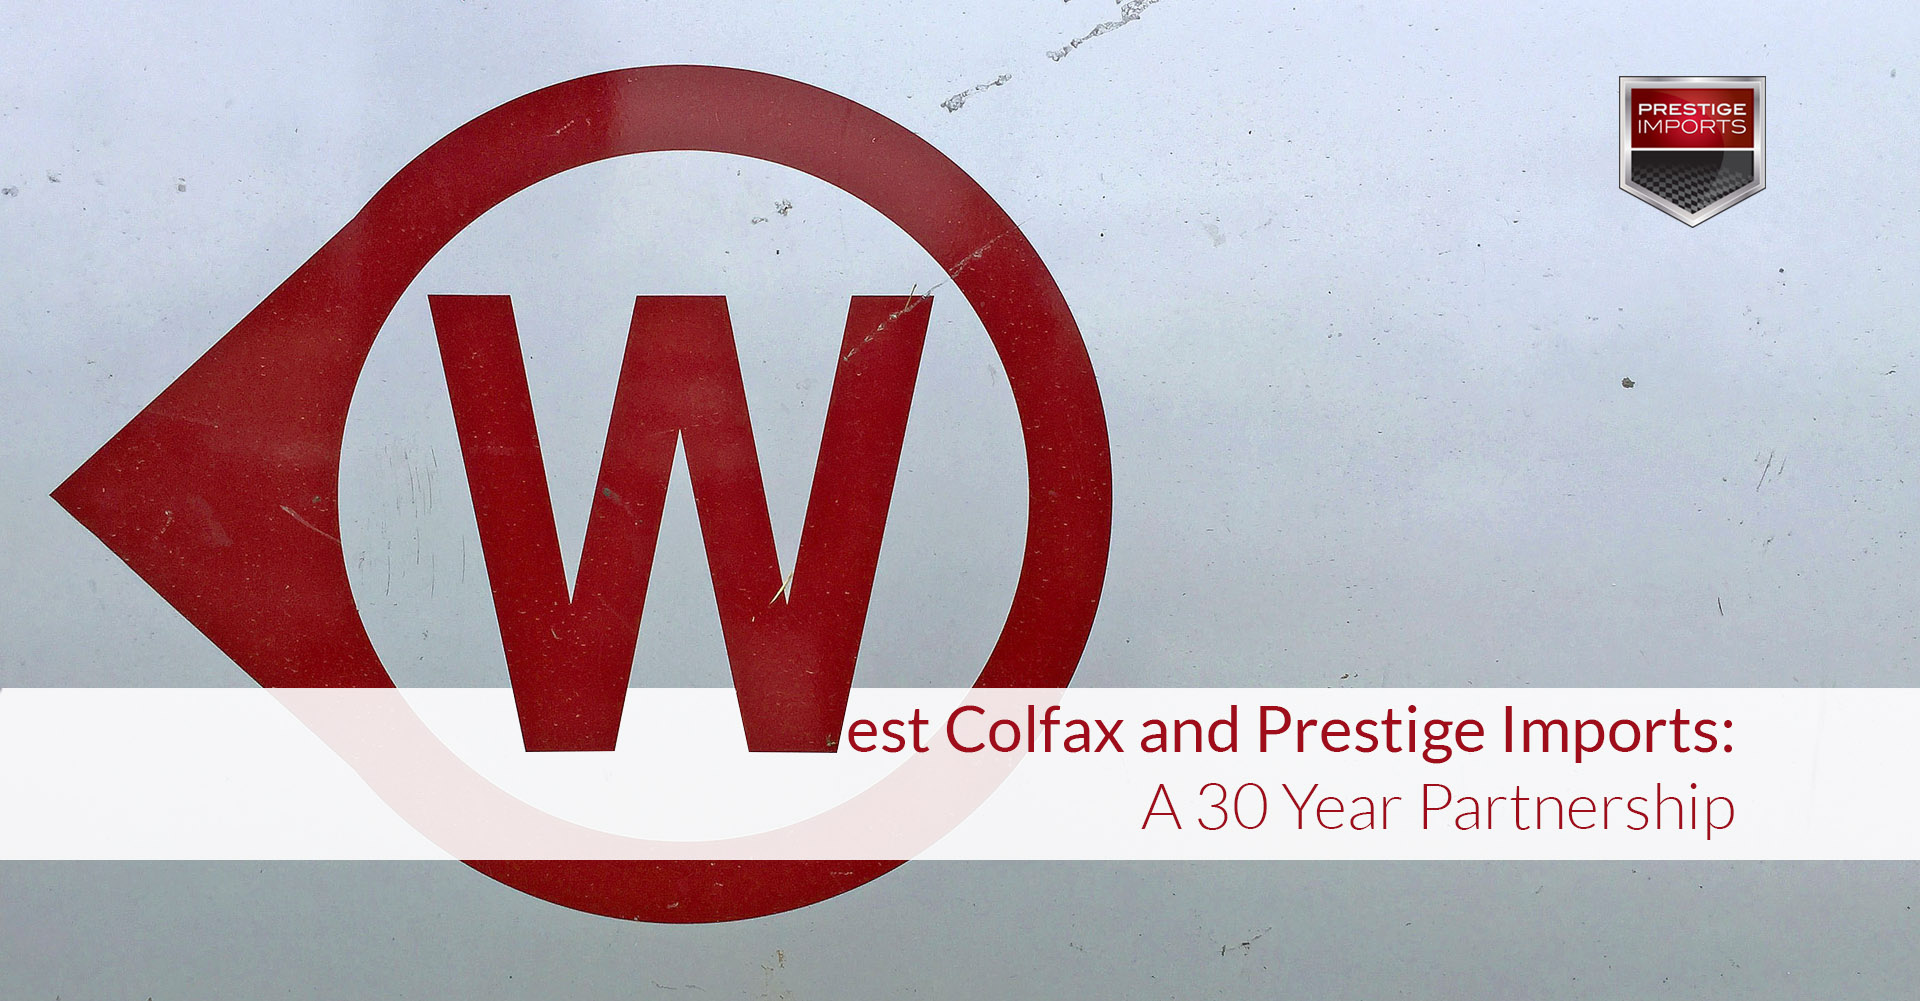 West Colfax And Prestige Imports A 30 Year Partnership